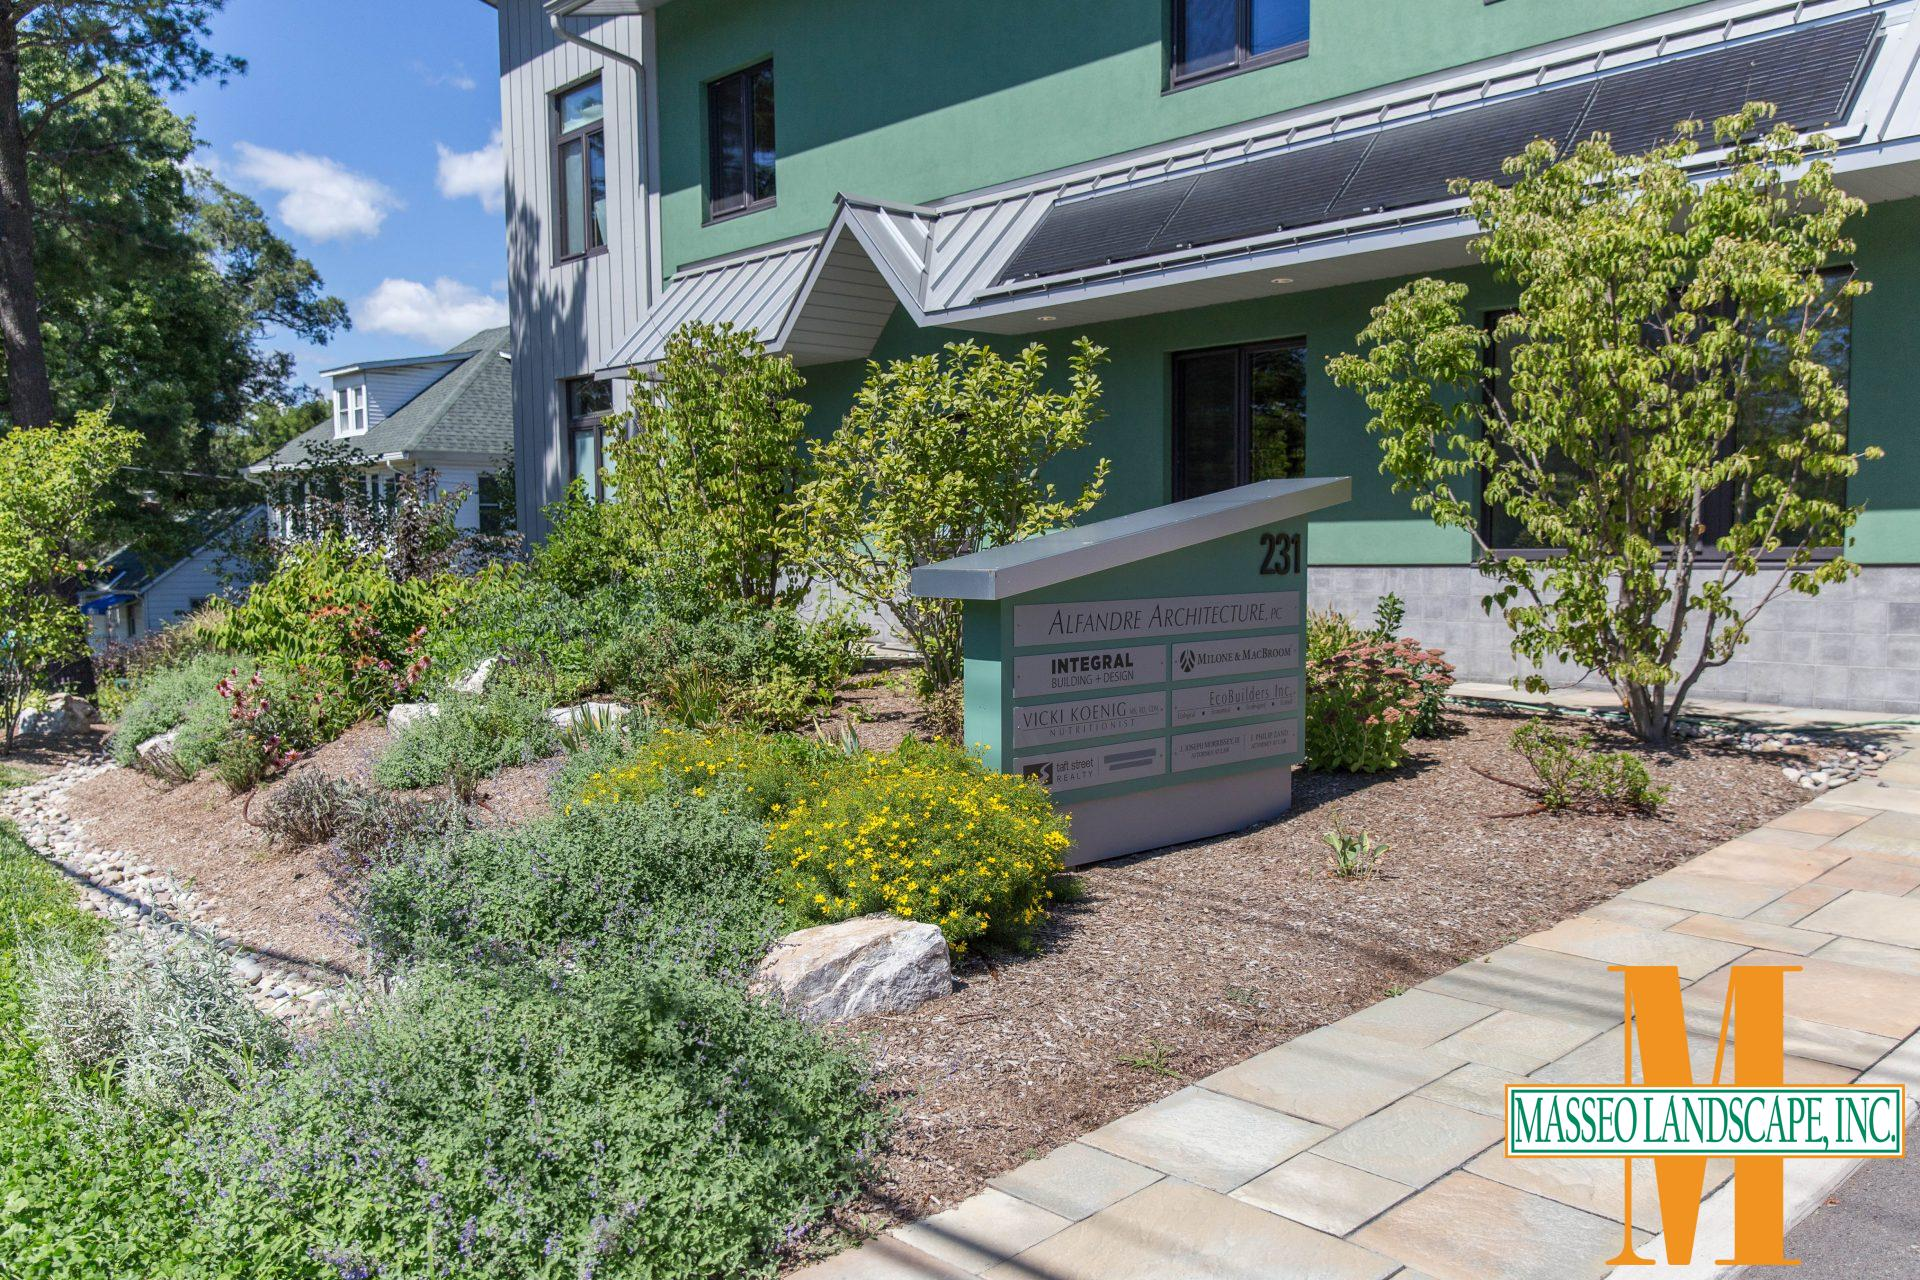 A drought-tolerant planting installation on a business front in New Paltz, NY.